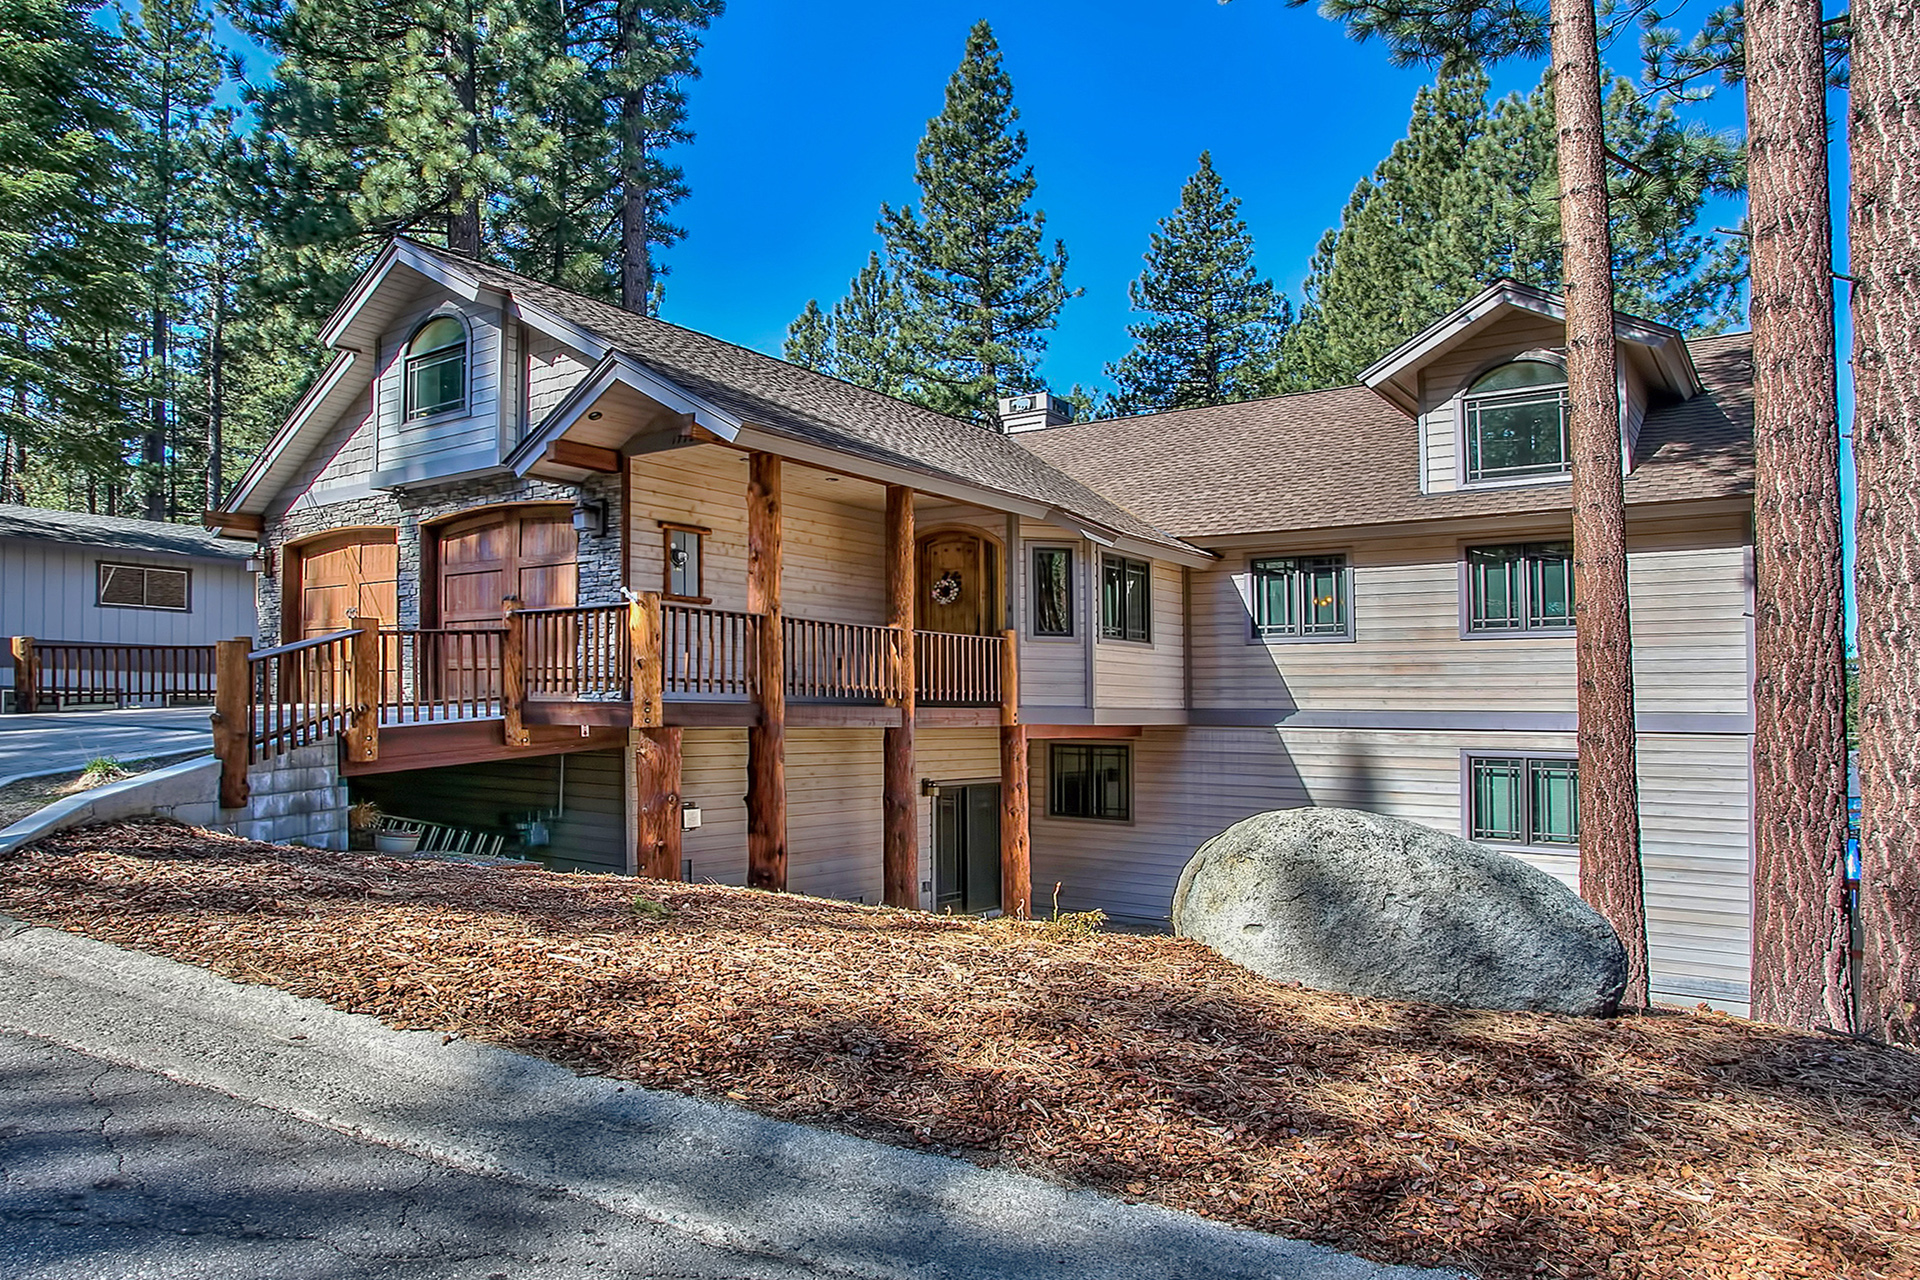 South lake tahoe home 1772 ra88846 redawning for Rent a cabin in lake tahoe ca